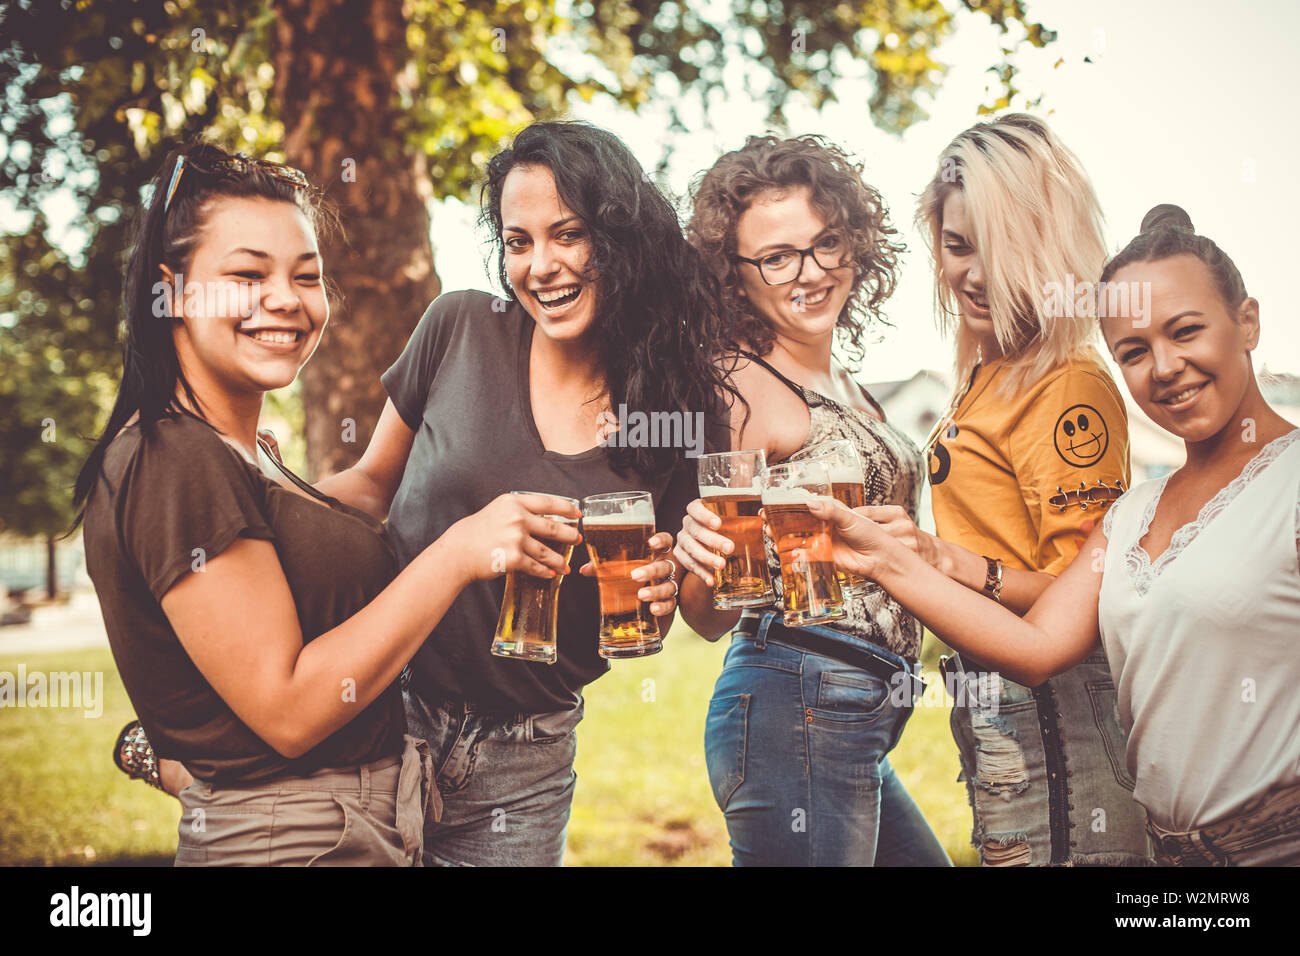 Group of best female friends drinking light beer - Friendship concept with young female friends enjoying time and having genuine fun at outdoor nature - Stock Image